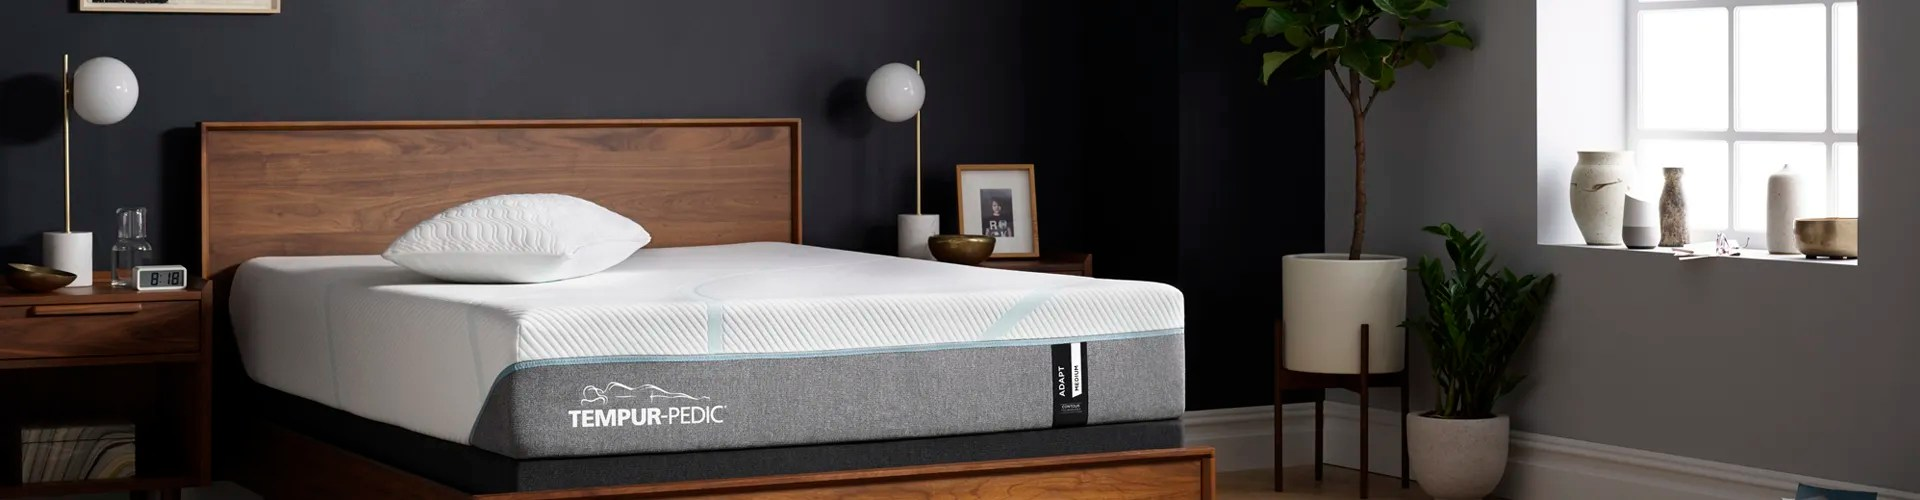 Local Bed Shops Wg R Sleep Shop Low Prices At Wisconsin Mattress Retailer